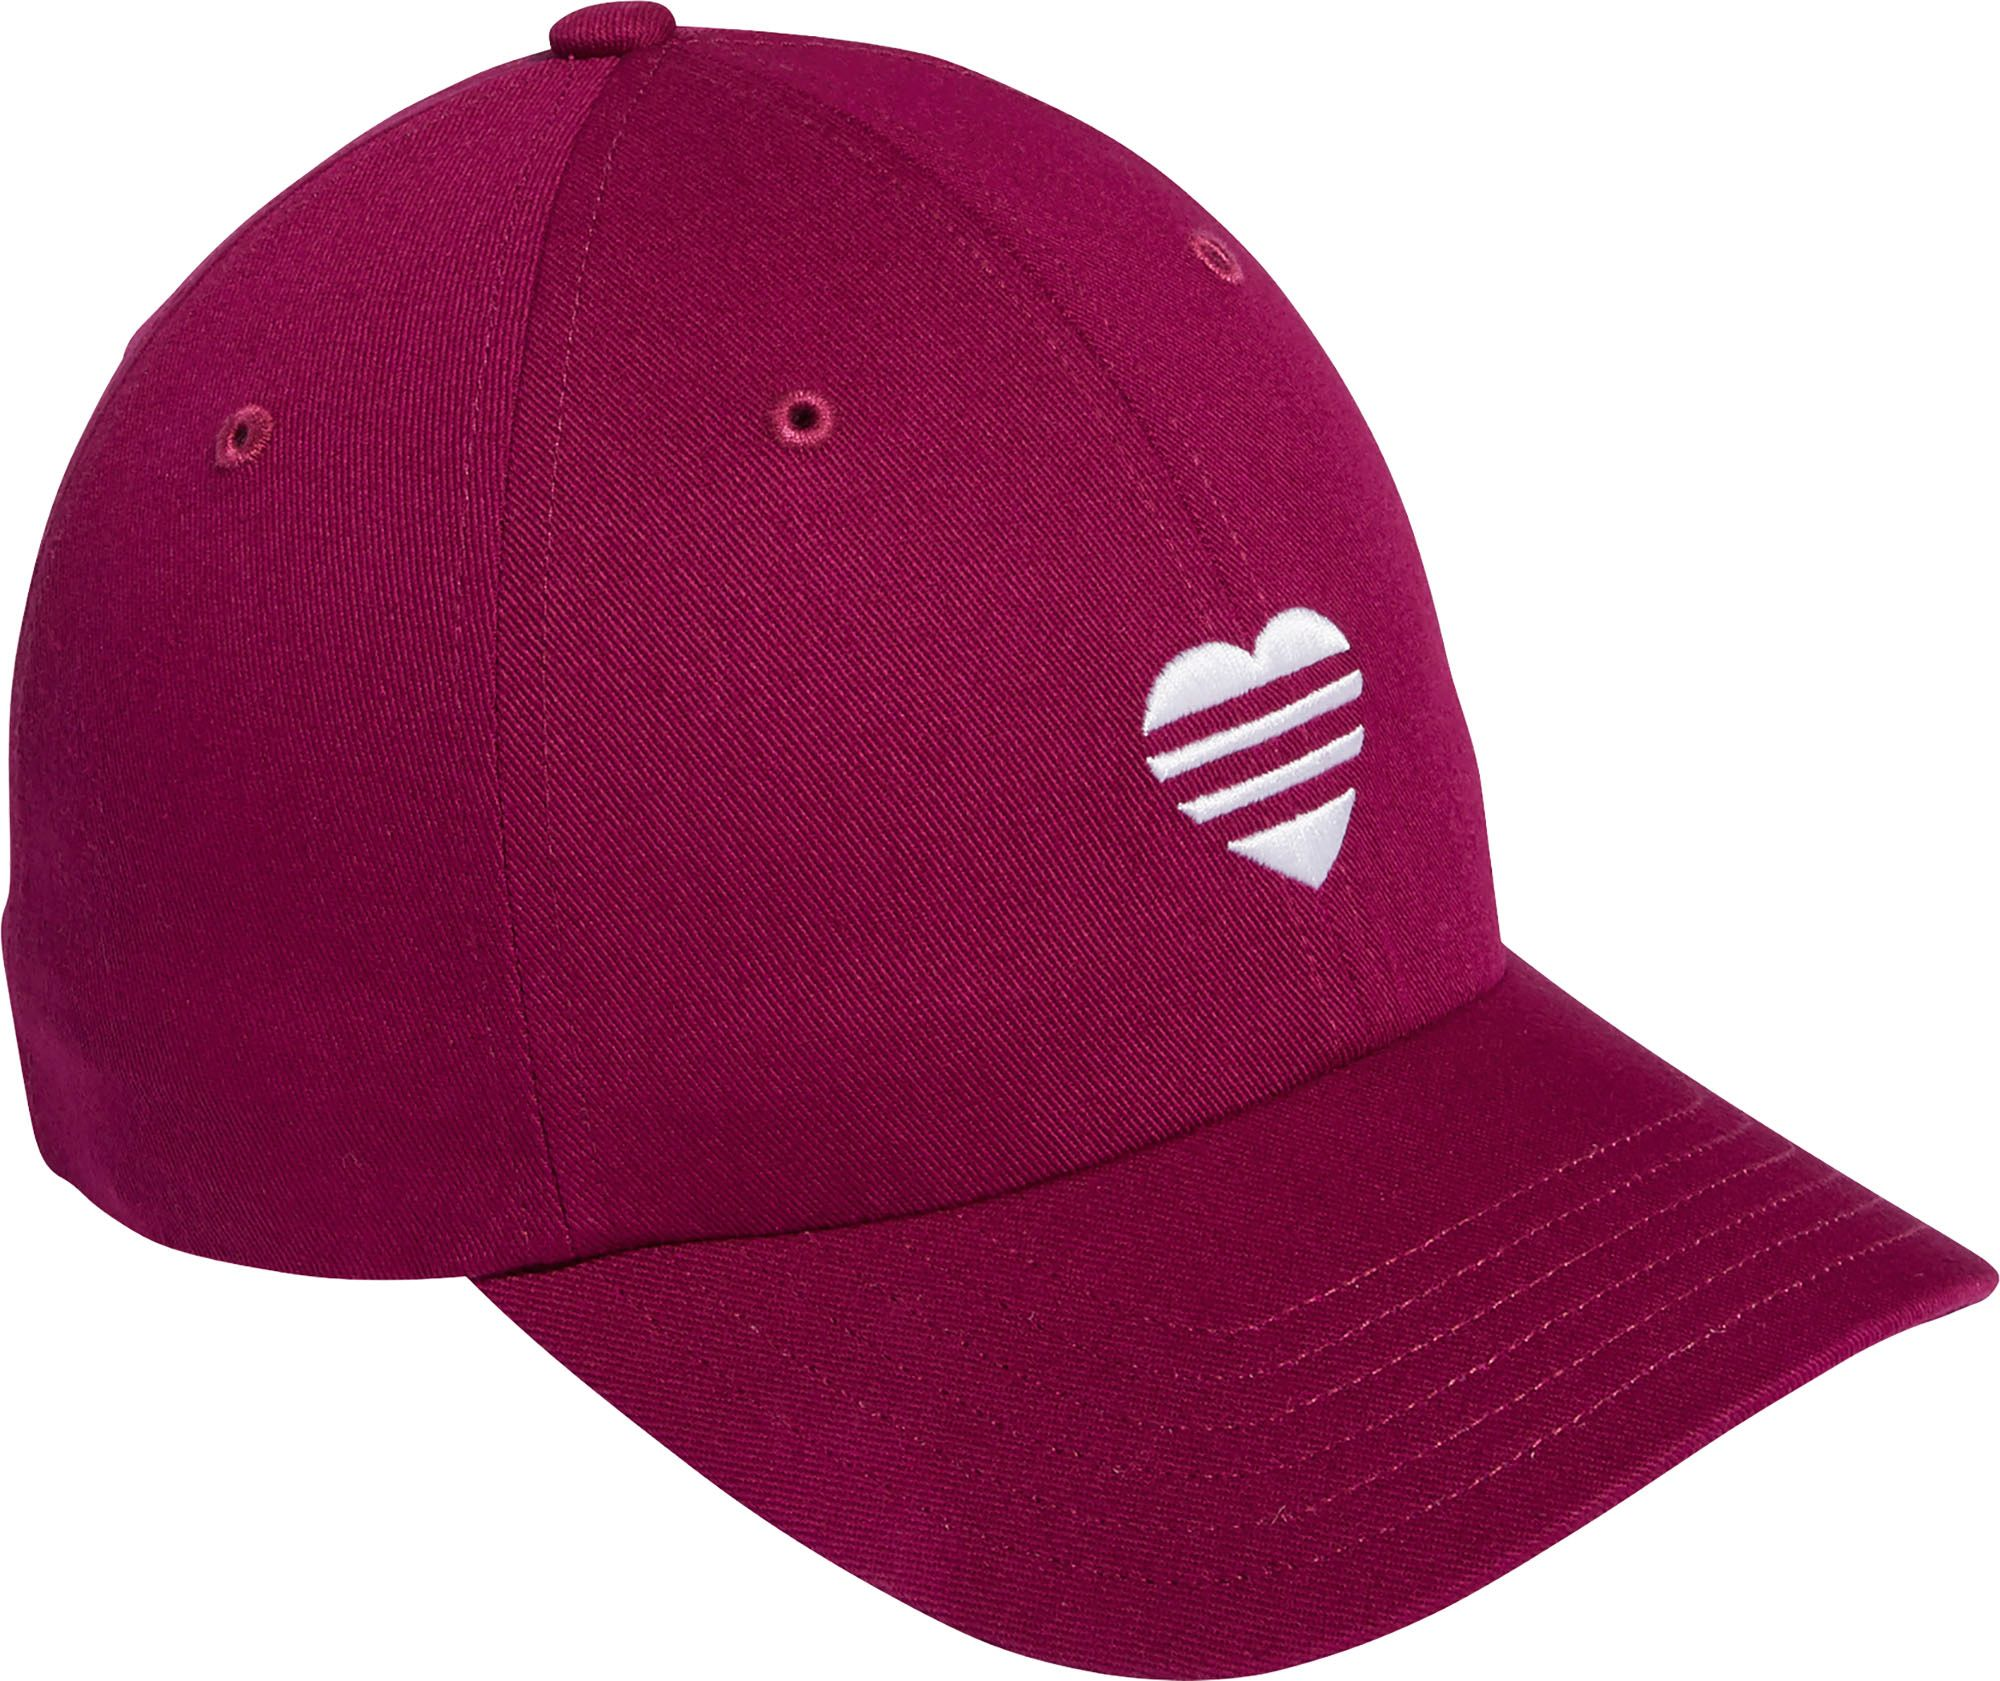 adidas Women's 2020 3 Stripe Heart Golf Hat, Berry